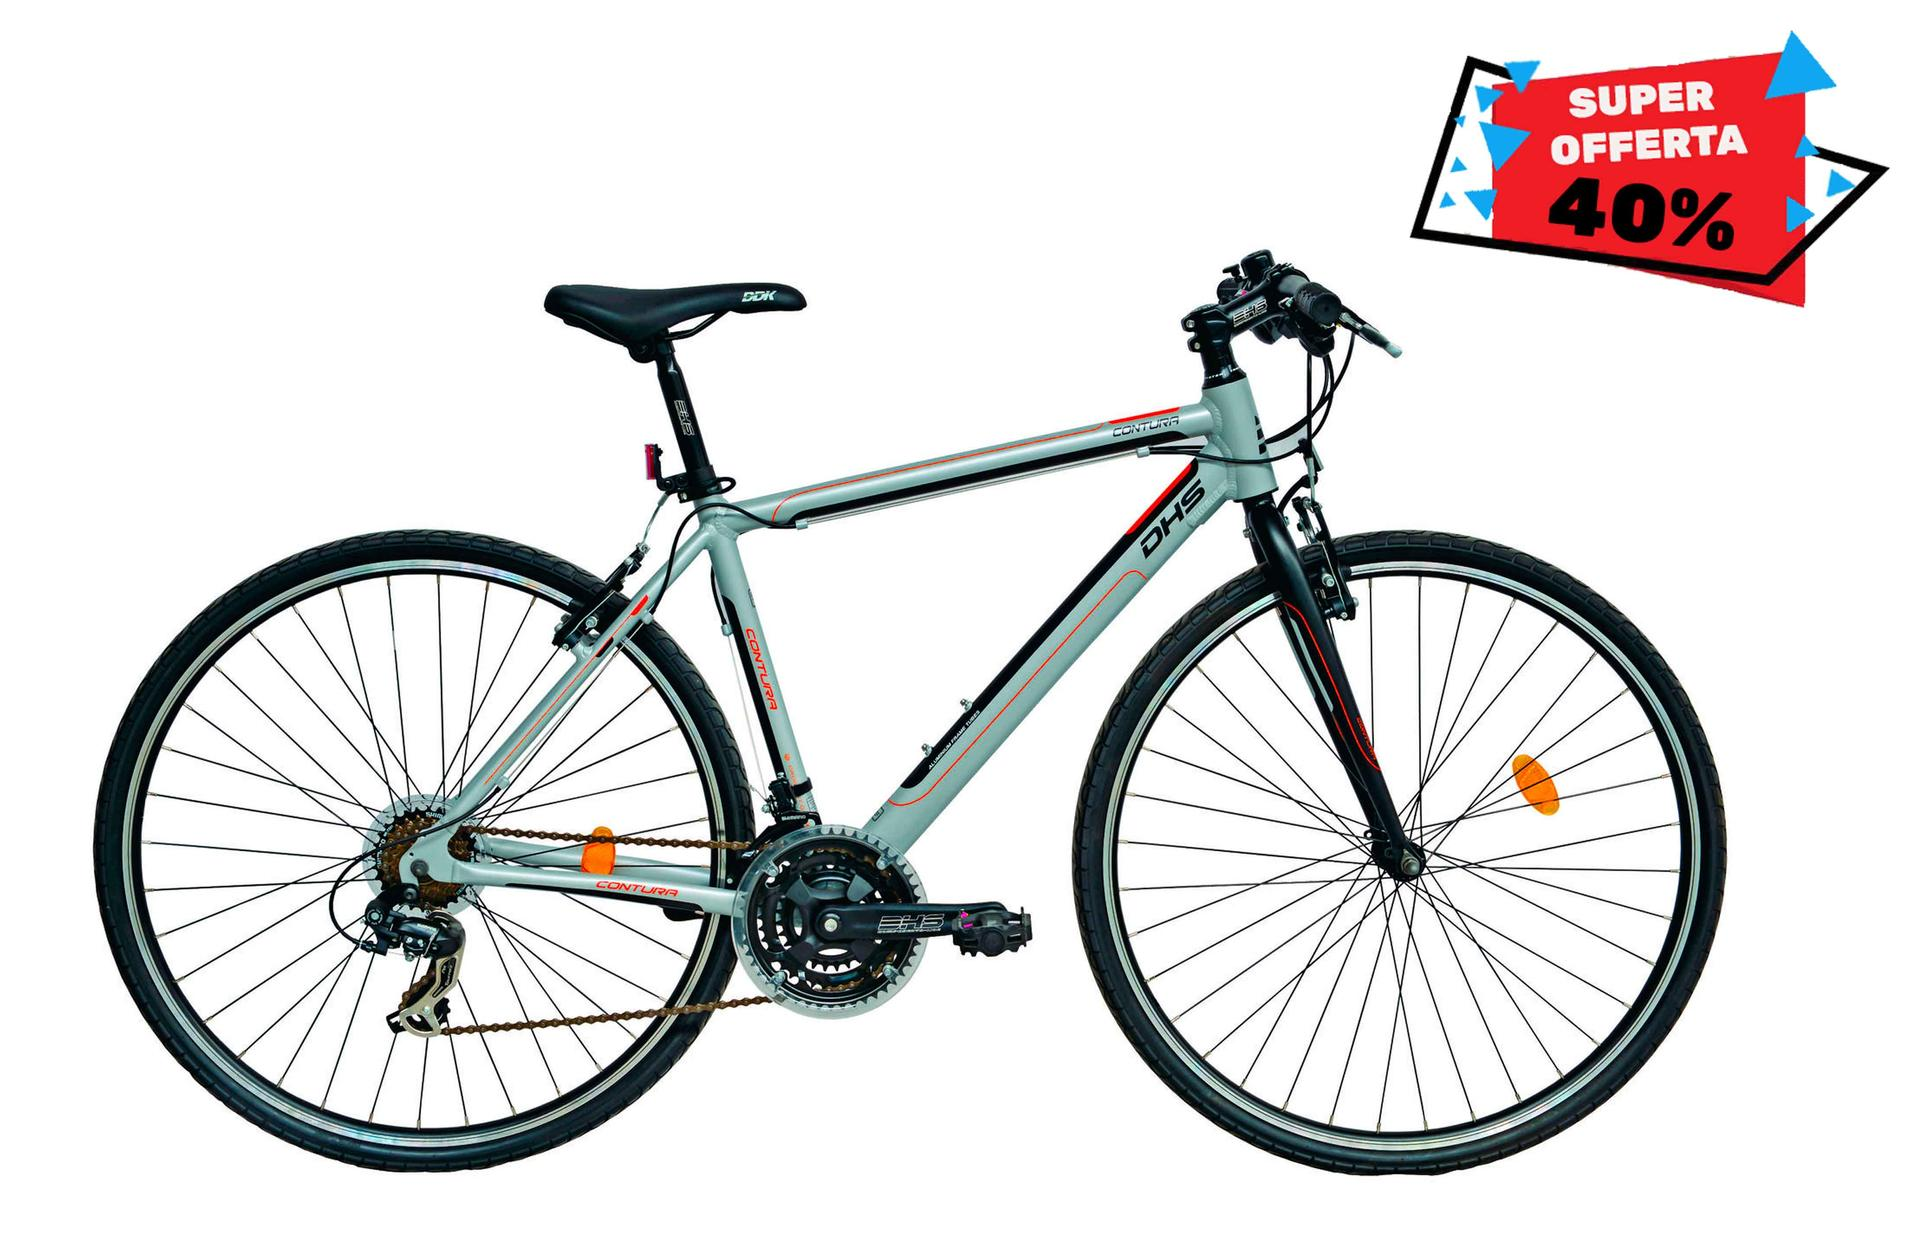 Bicicletta uomo da cross DHS 2863 Grey 530mm